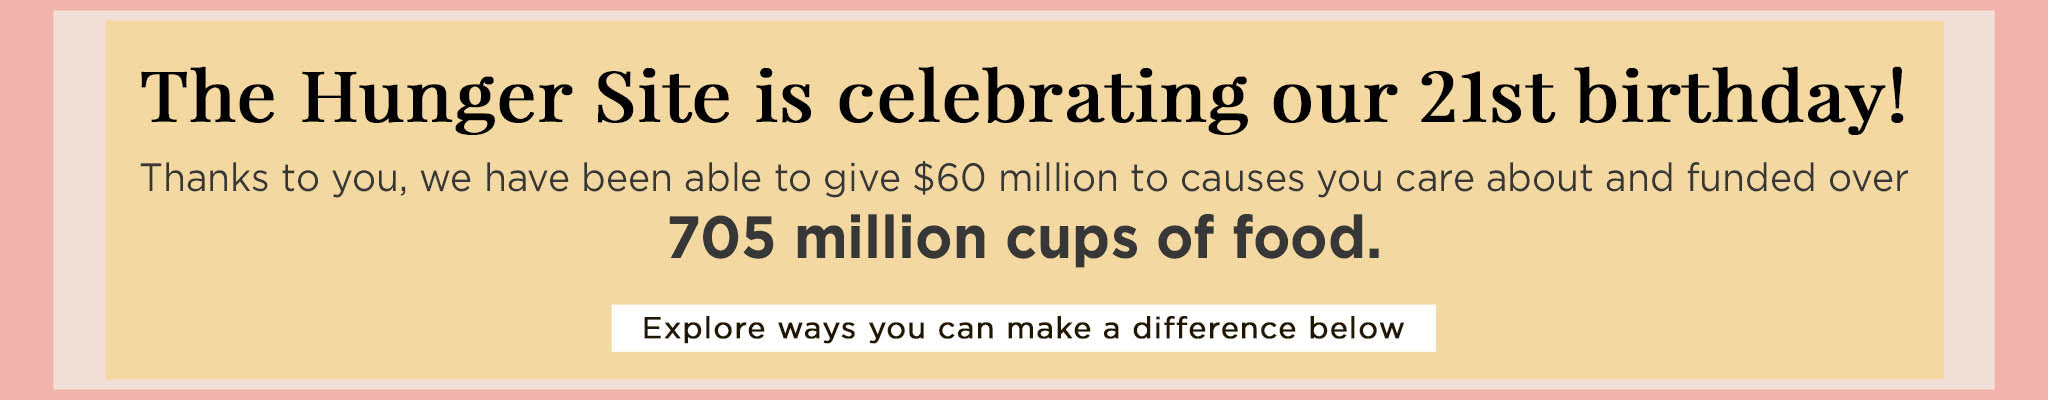 The Hunger Site is celebrating our 21st birthday! Thanks to you, we have been able to give $60 million to causes you care about and funded over 705 million cups of food. | Explore ways you can make a difference below.